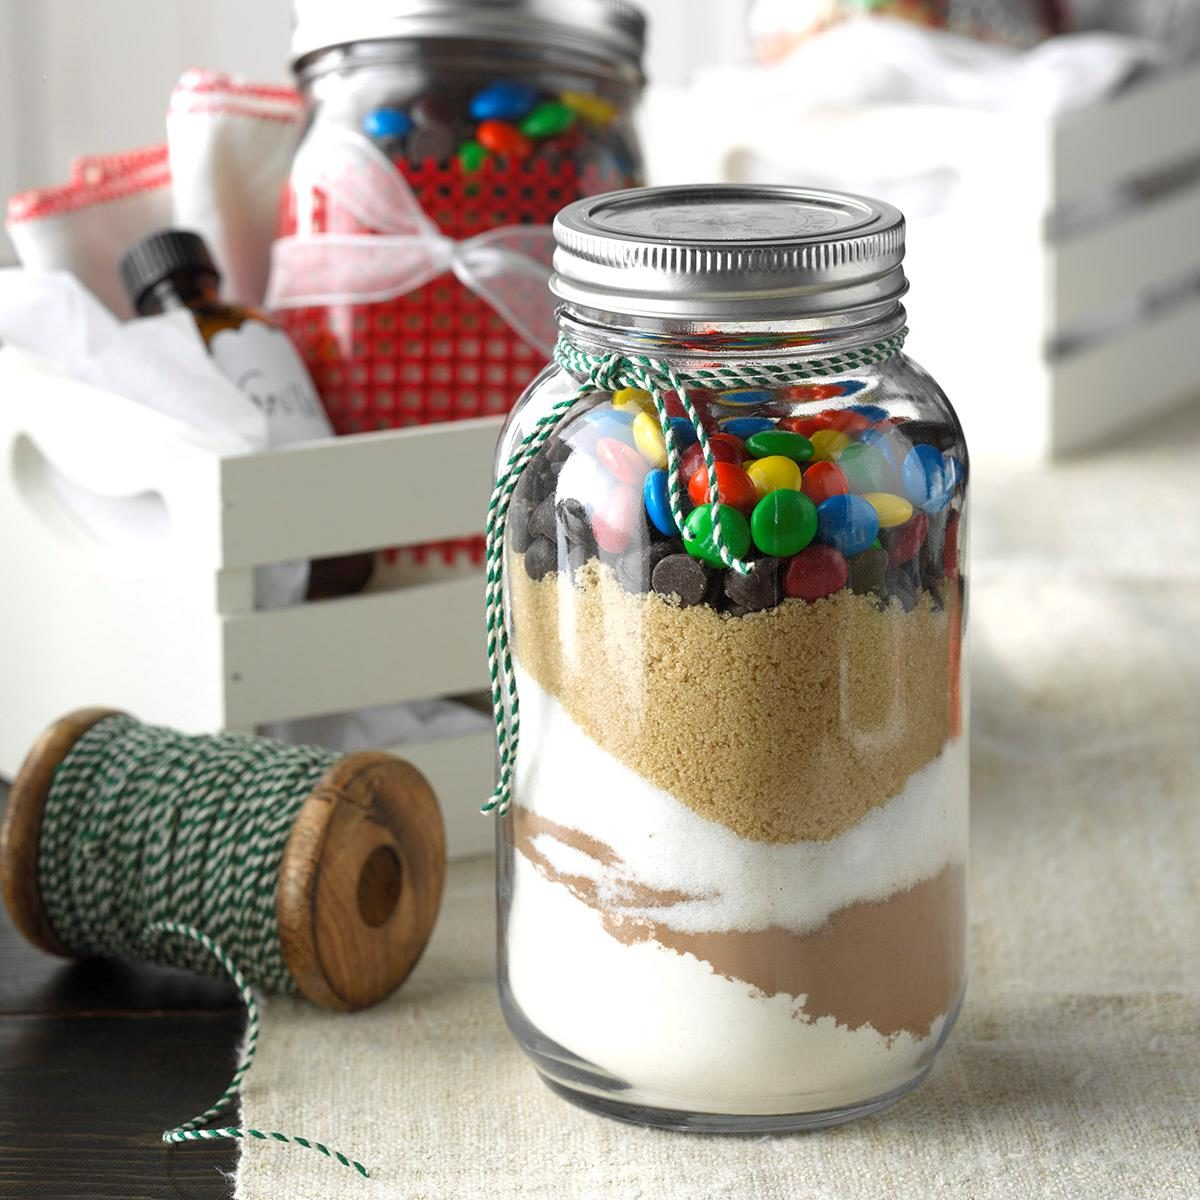 DIY Preschool Father's Day Gifts Your Little Ones Will Love